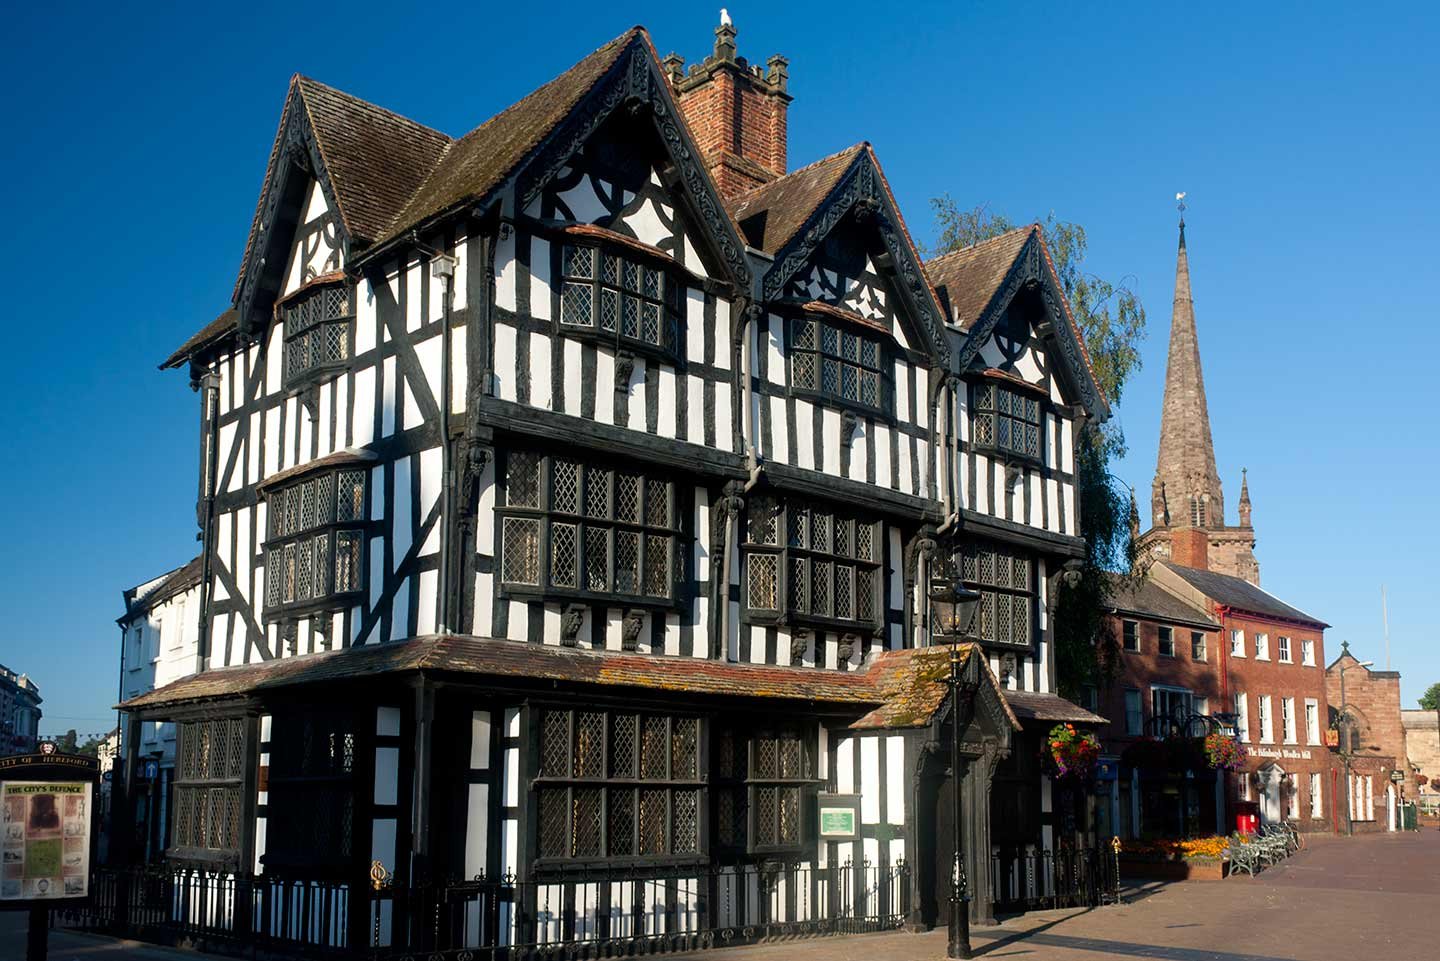 Image of the Black and White House Museum in Hereford, England